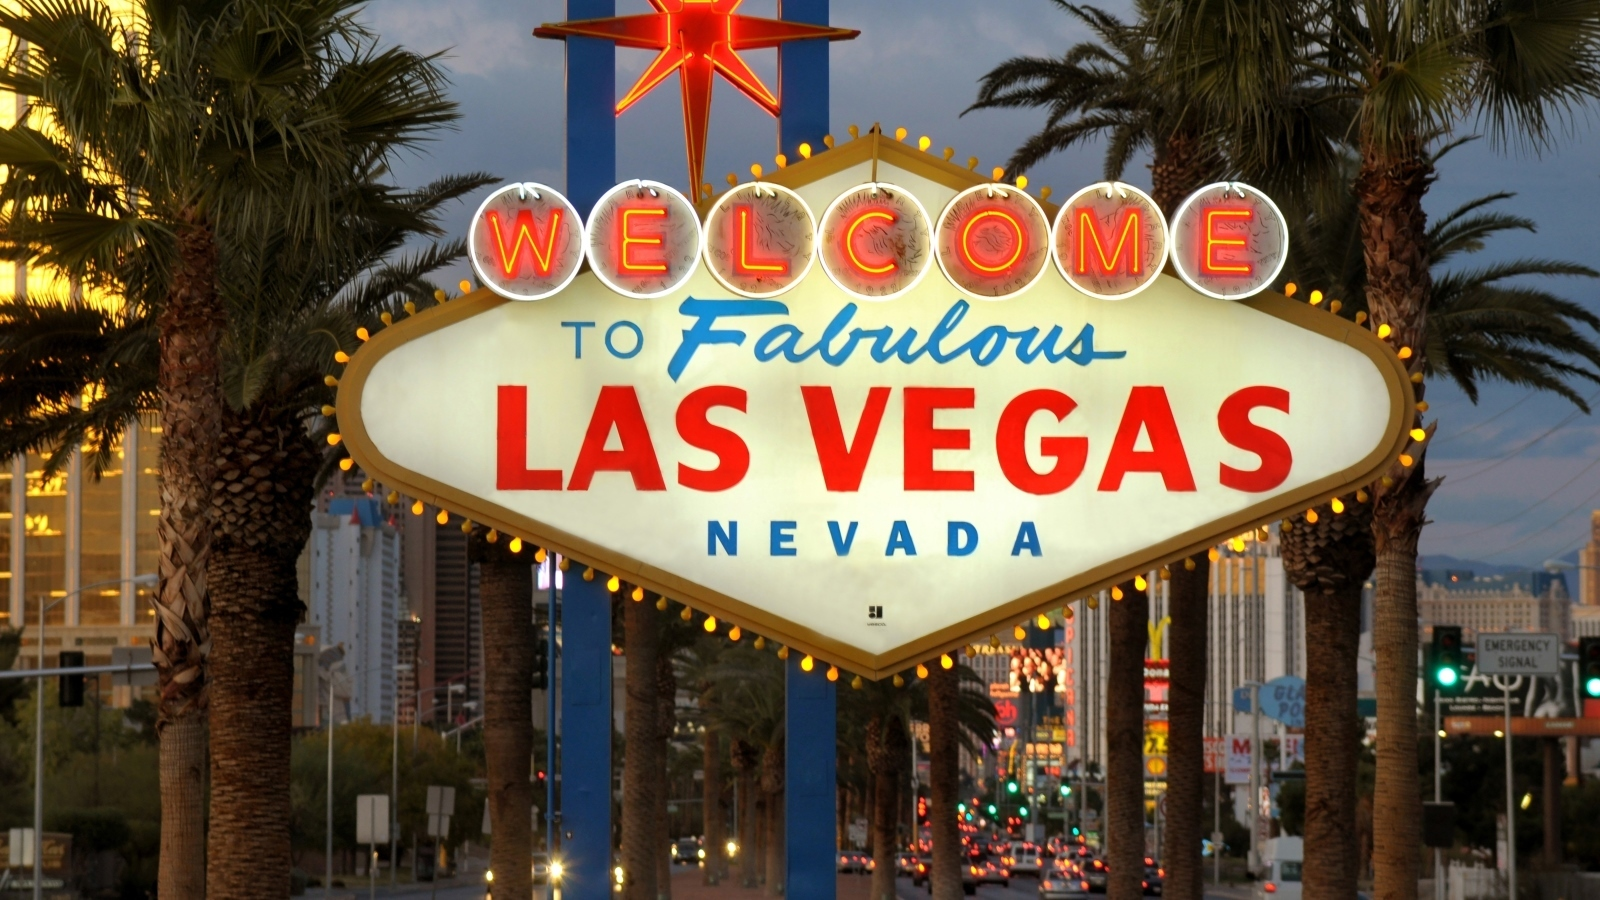 Are Las Vegas Casinos About To Start Serving Weed?